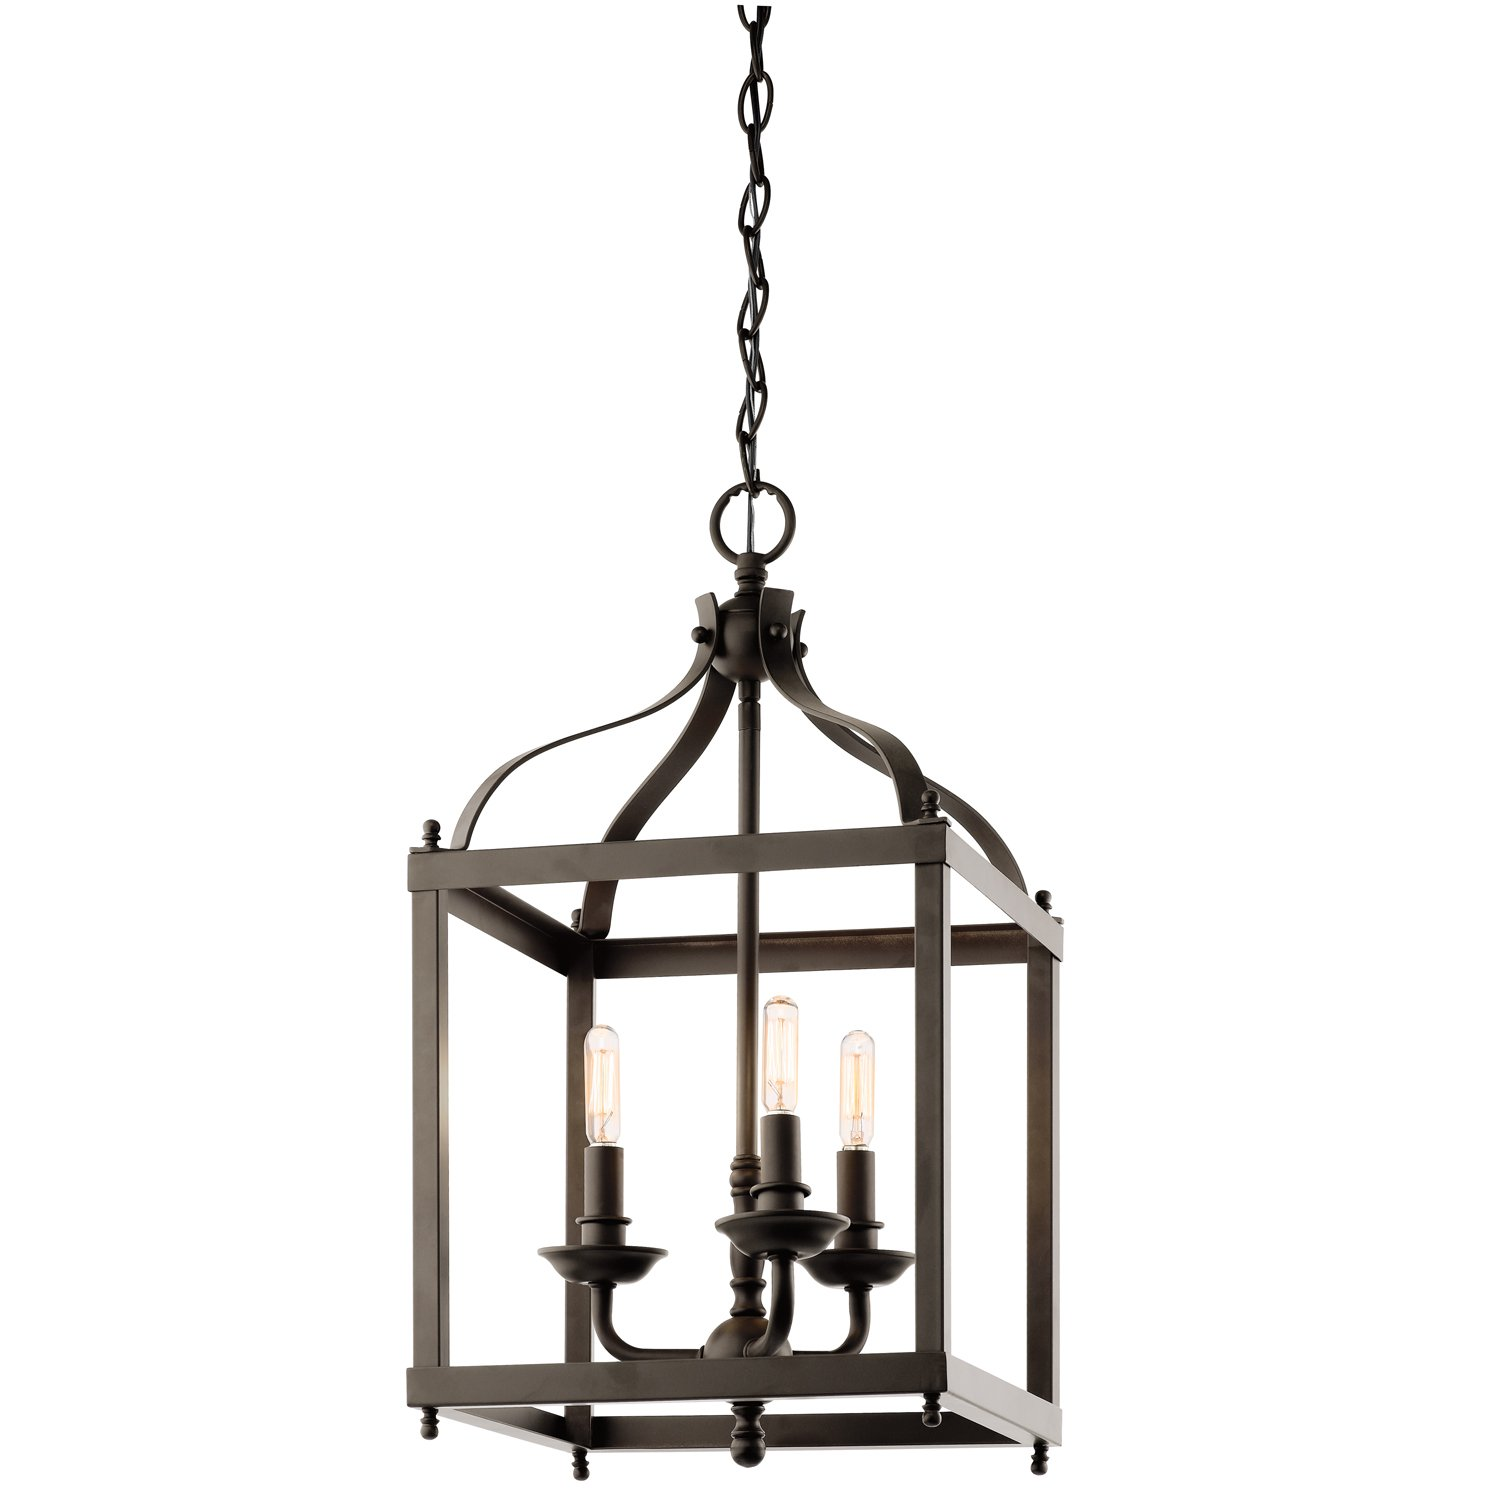 3 pendant light kit. Kichler 42566OZ Larkin Indoor Pendant 3-Light, Olde Bronze - Ceiling Fixtures Amazon.com 3 Light Kit